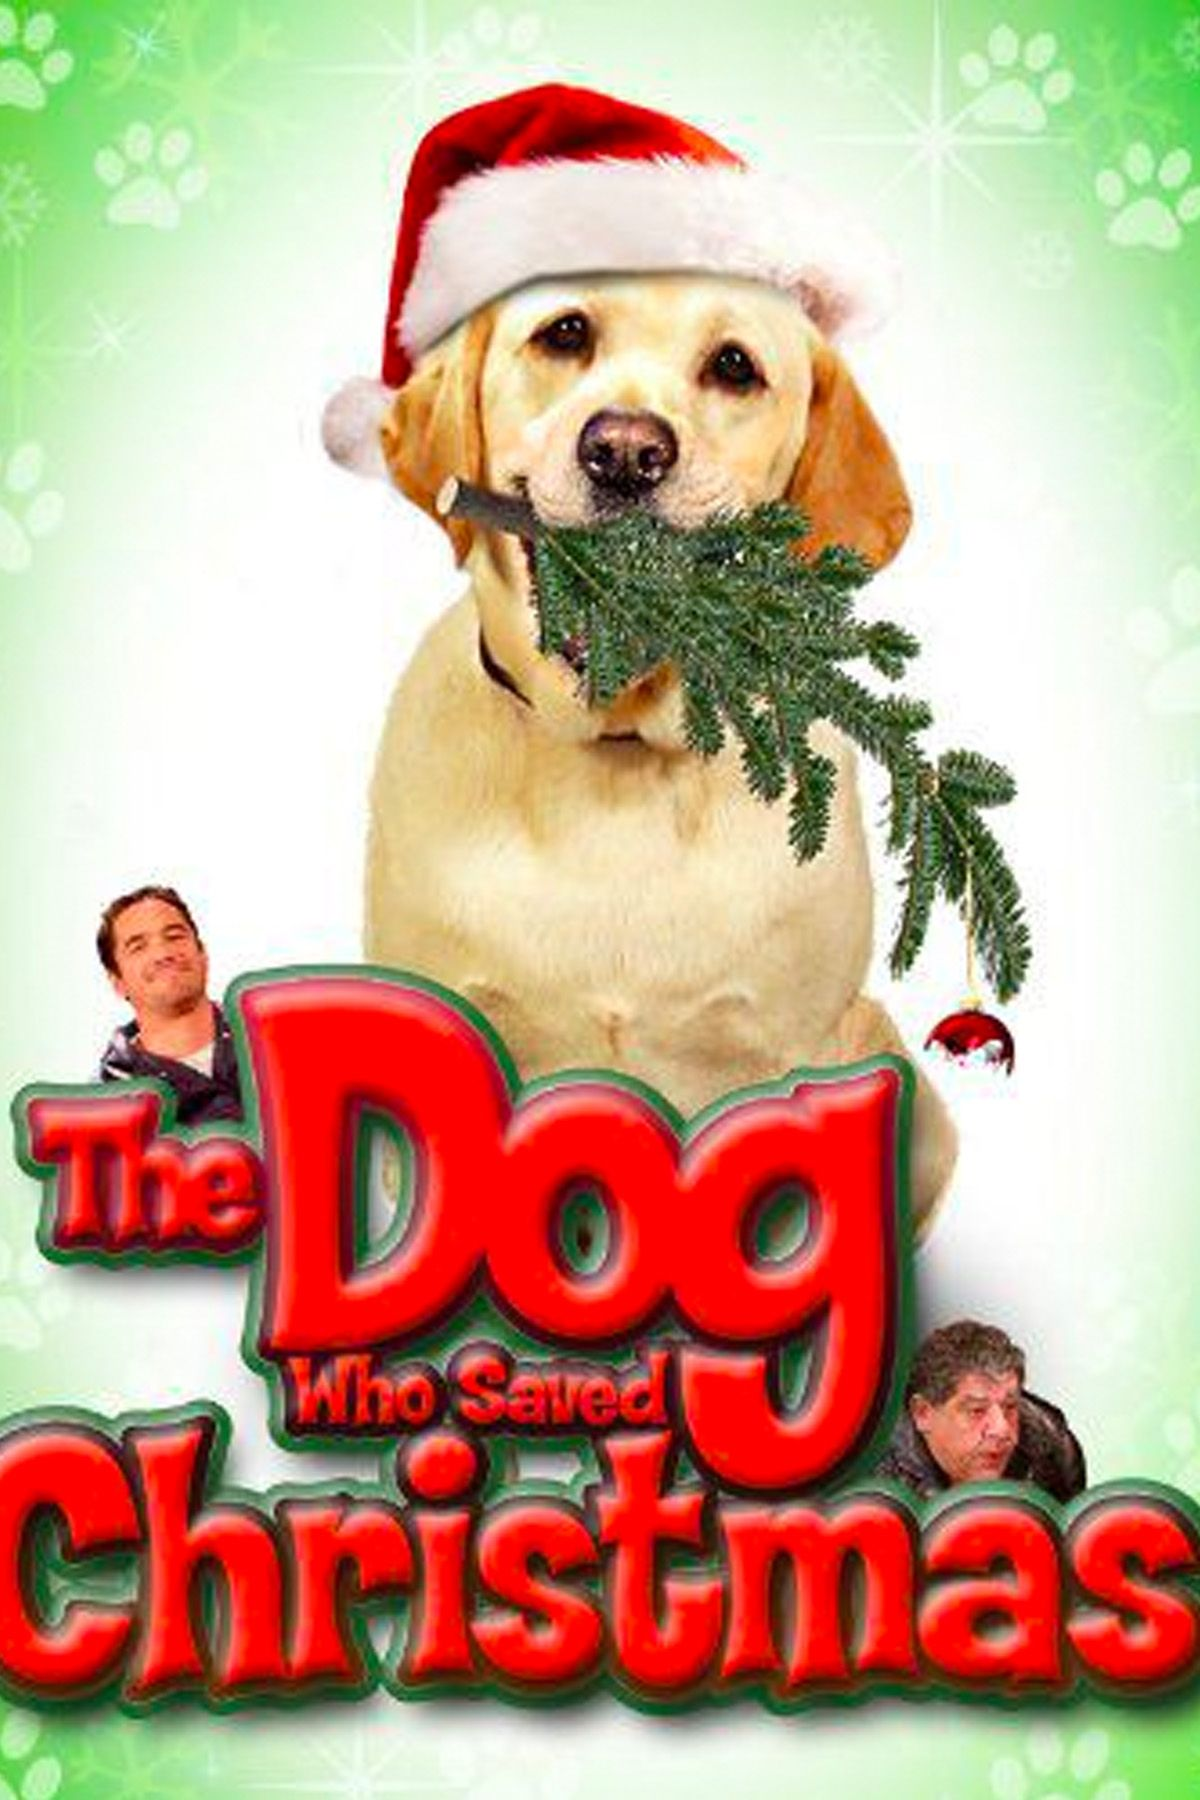 20 Best Christmas Movies for Kids - Top Family Holiday Films